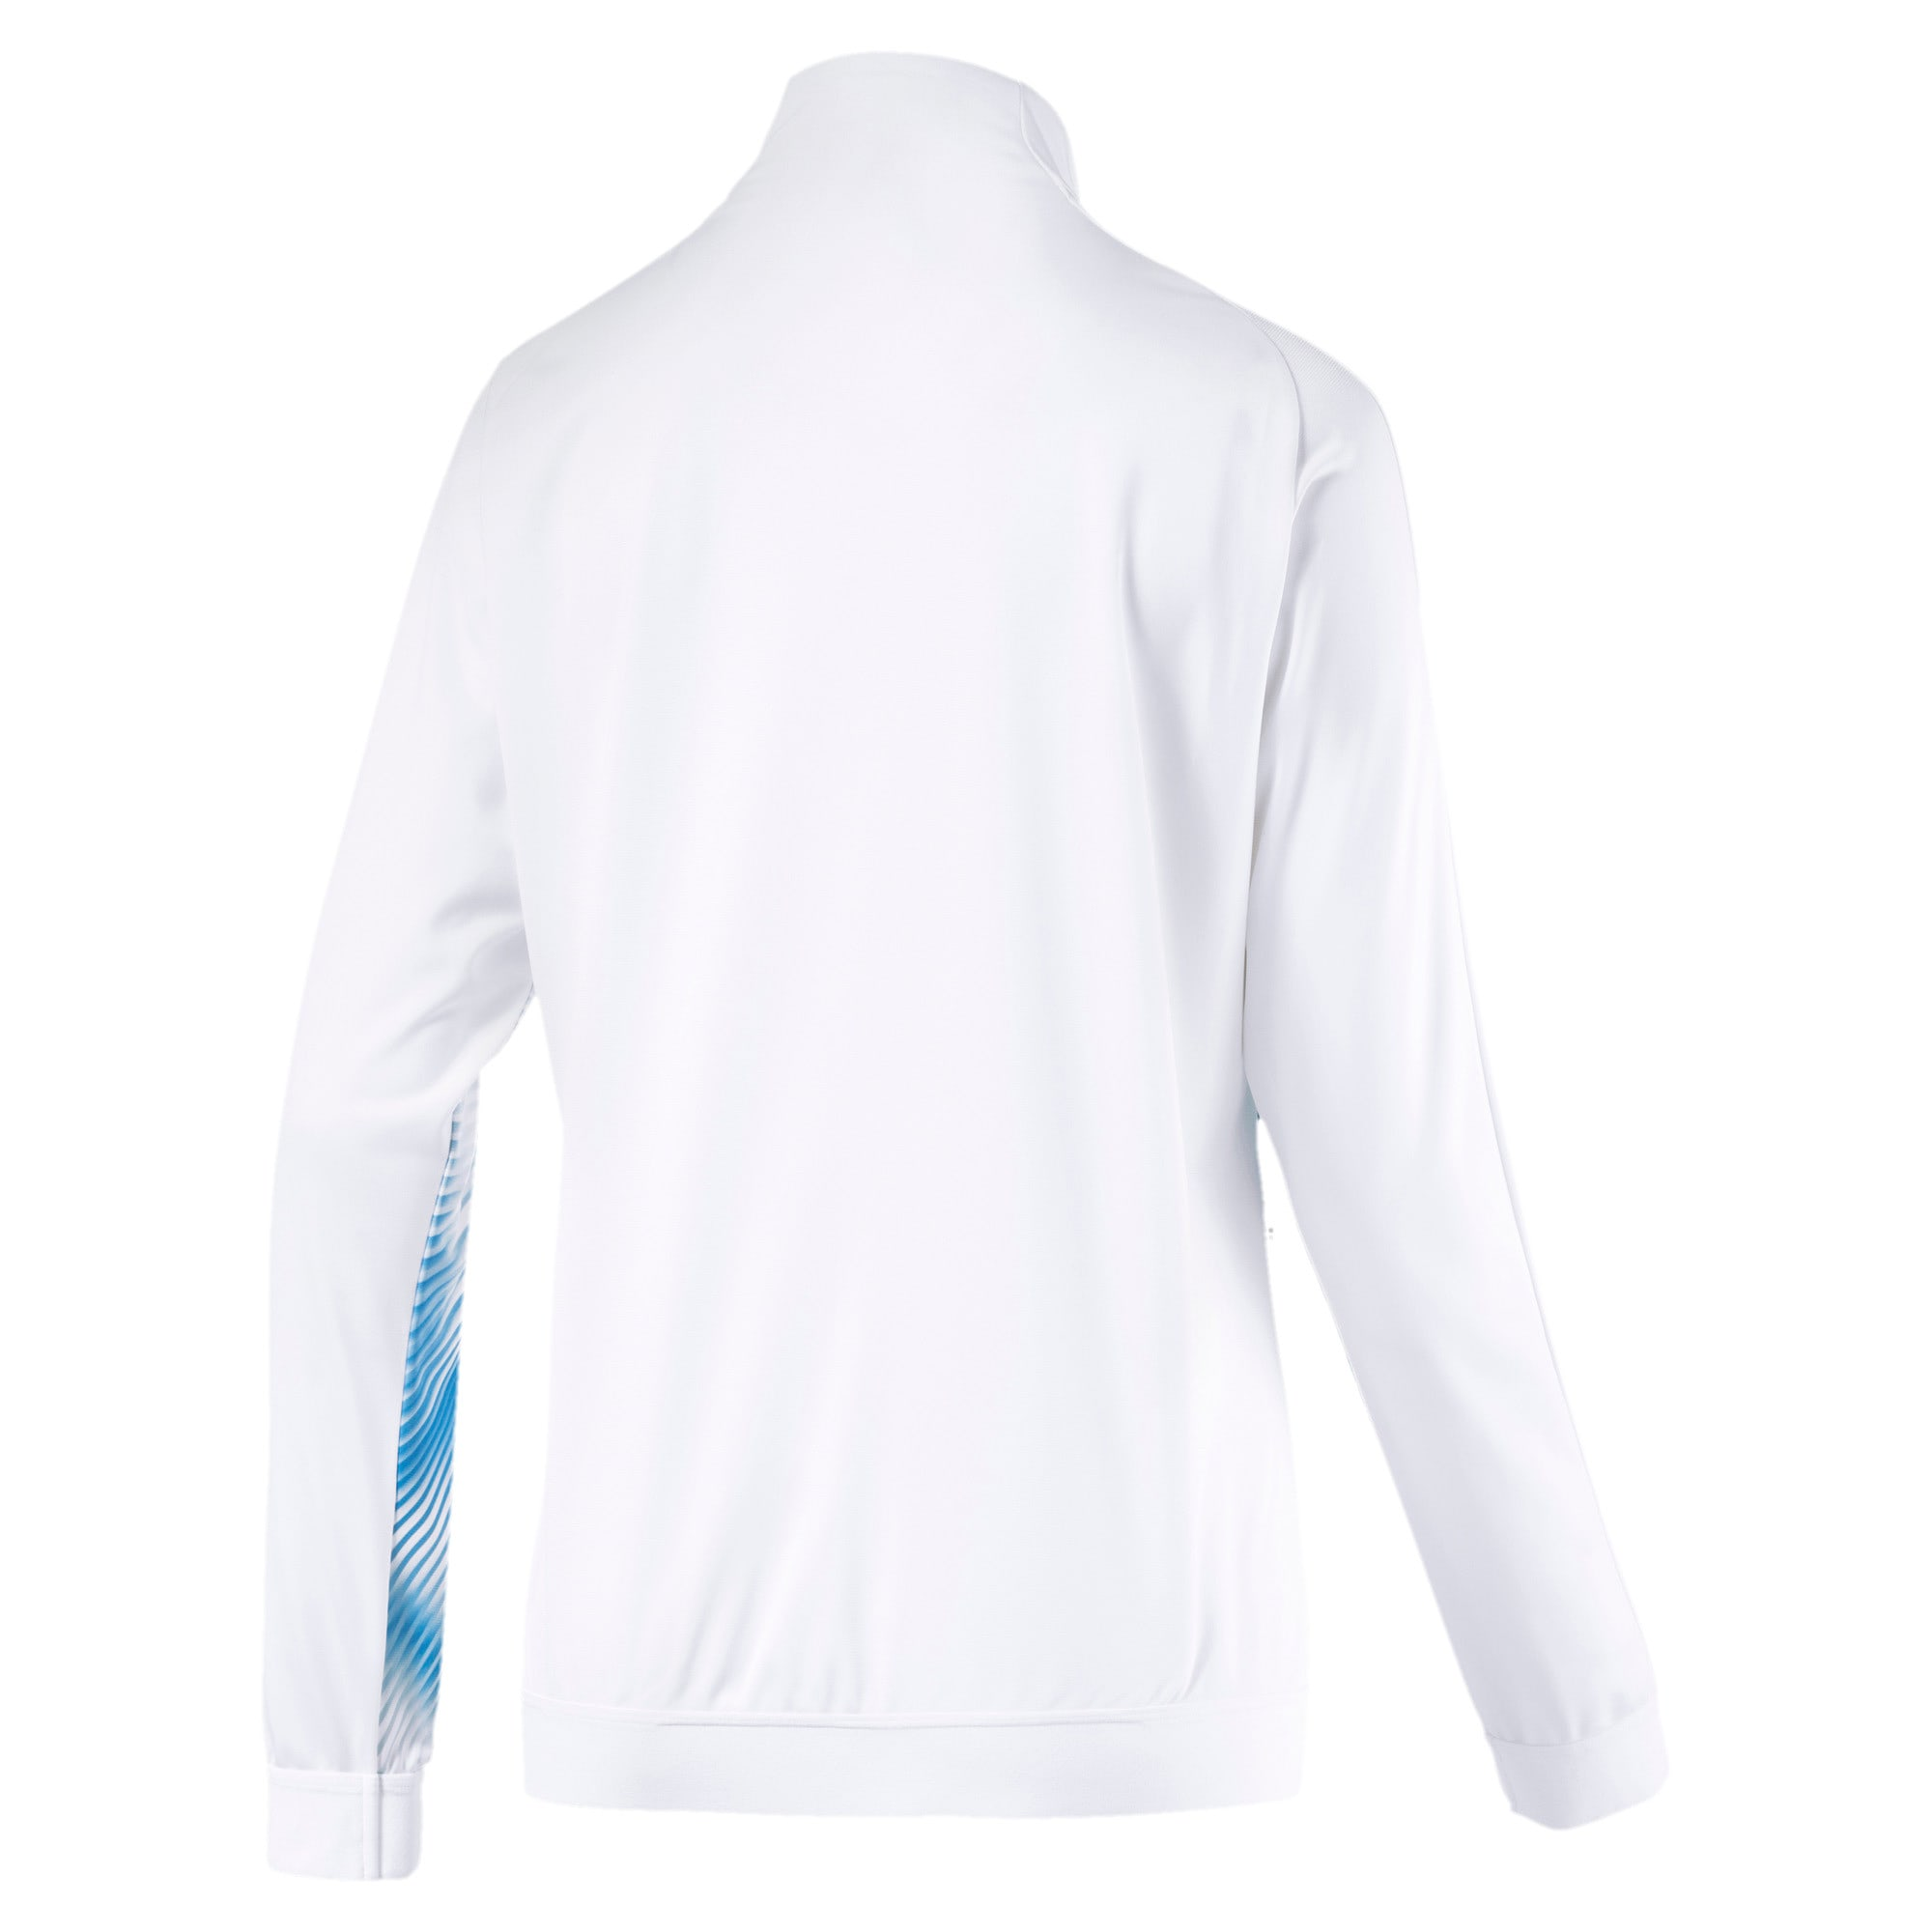 Thumbnail 2 of Olympique de Marseille Stadium Women's Replica Jacket, Puma White-Bleu Azur, medium